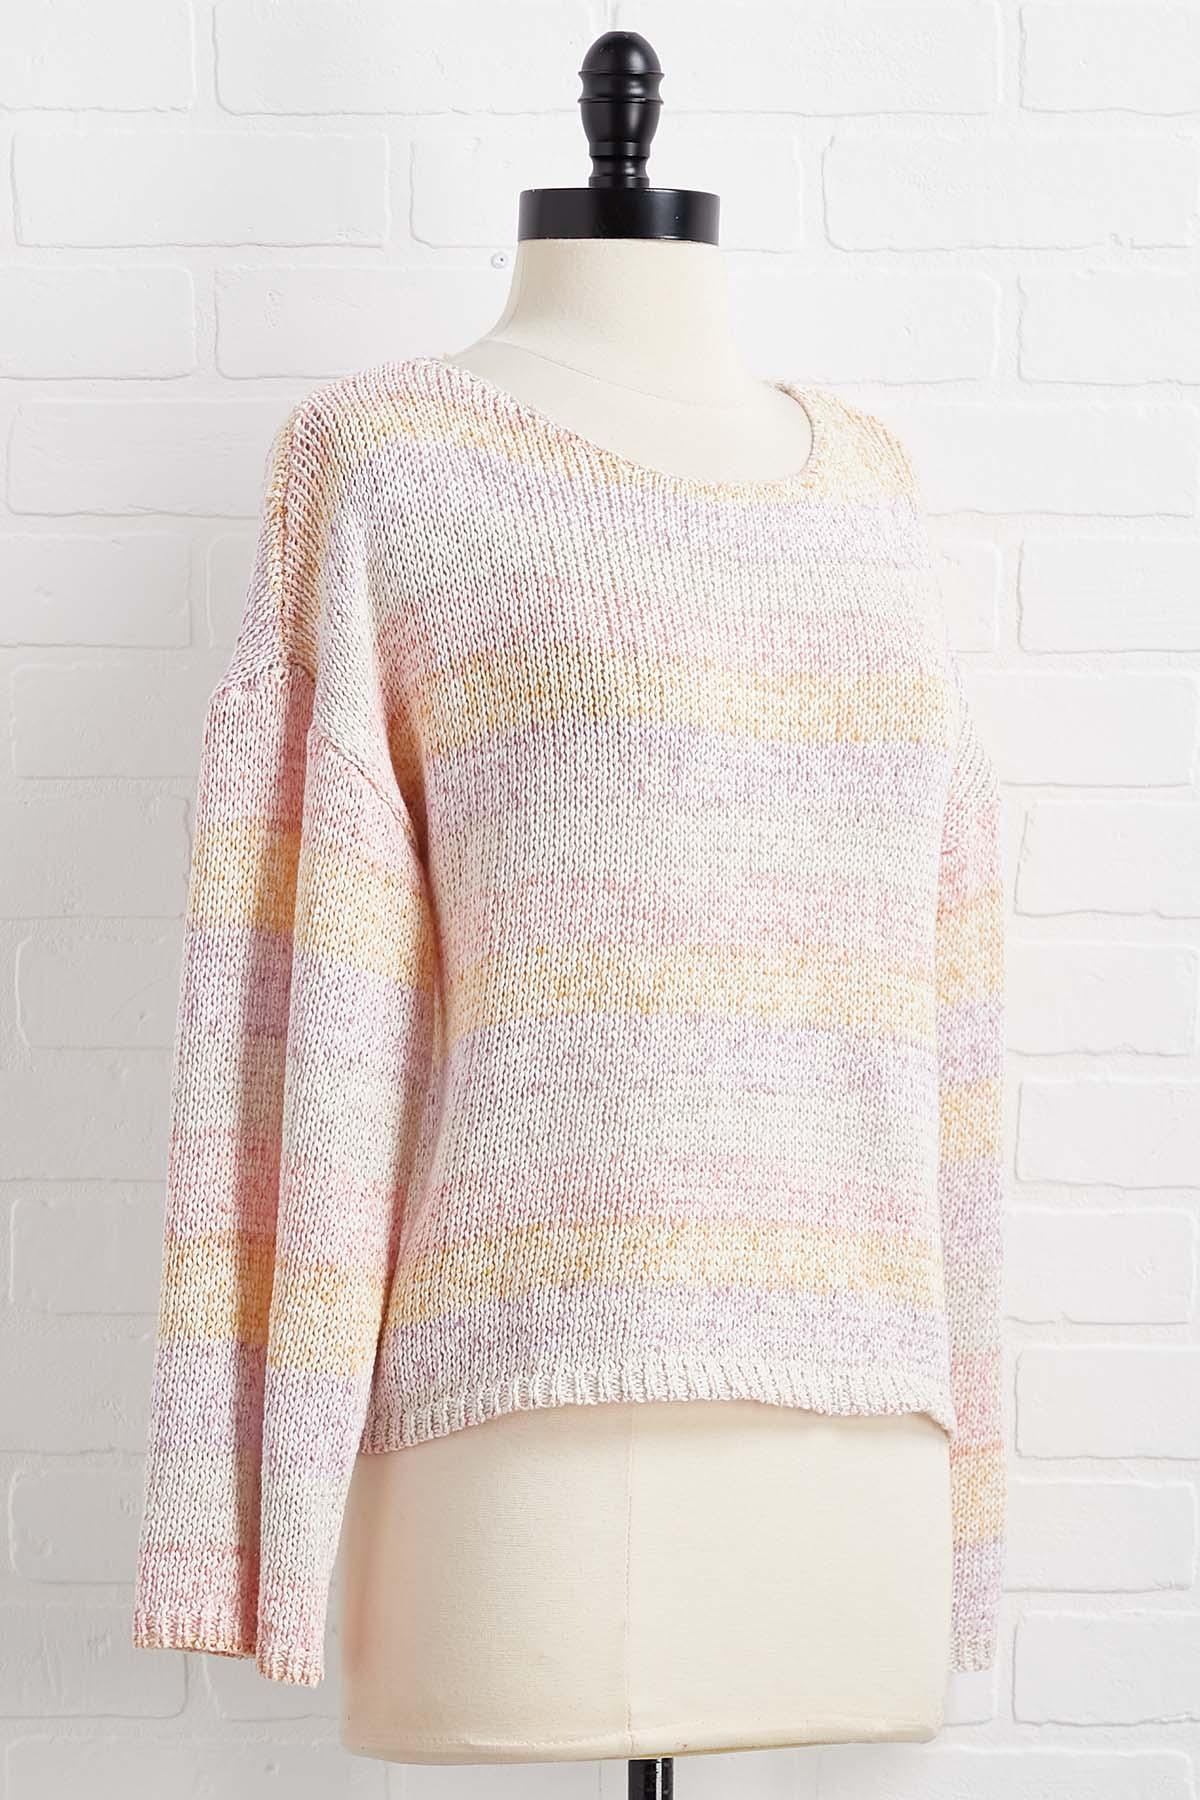 Make Knit Or Break Knit Sweater